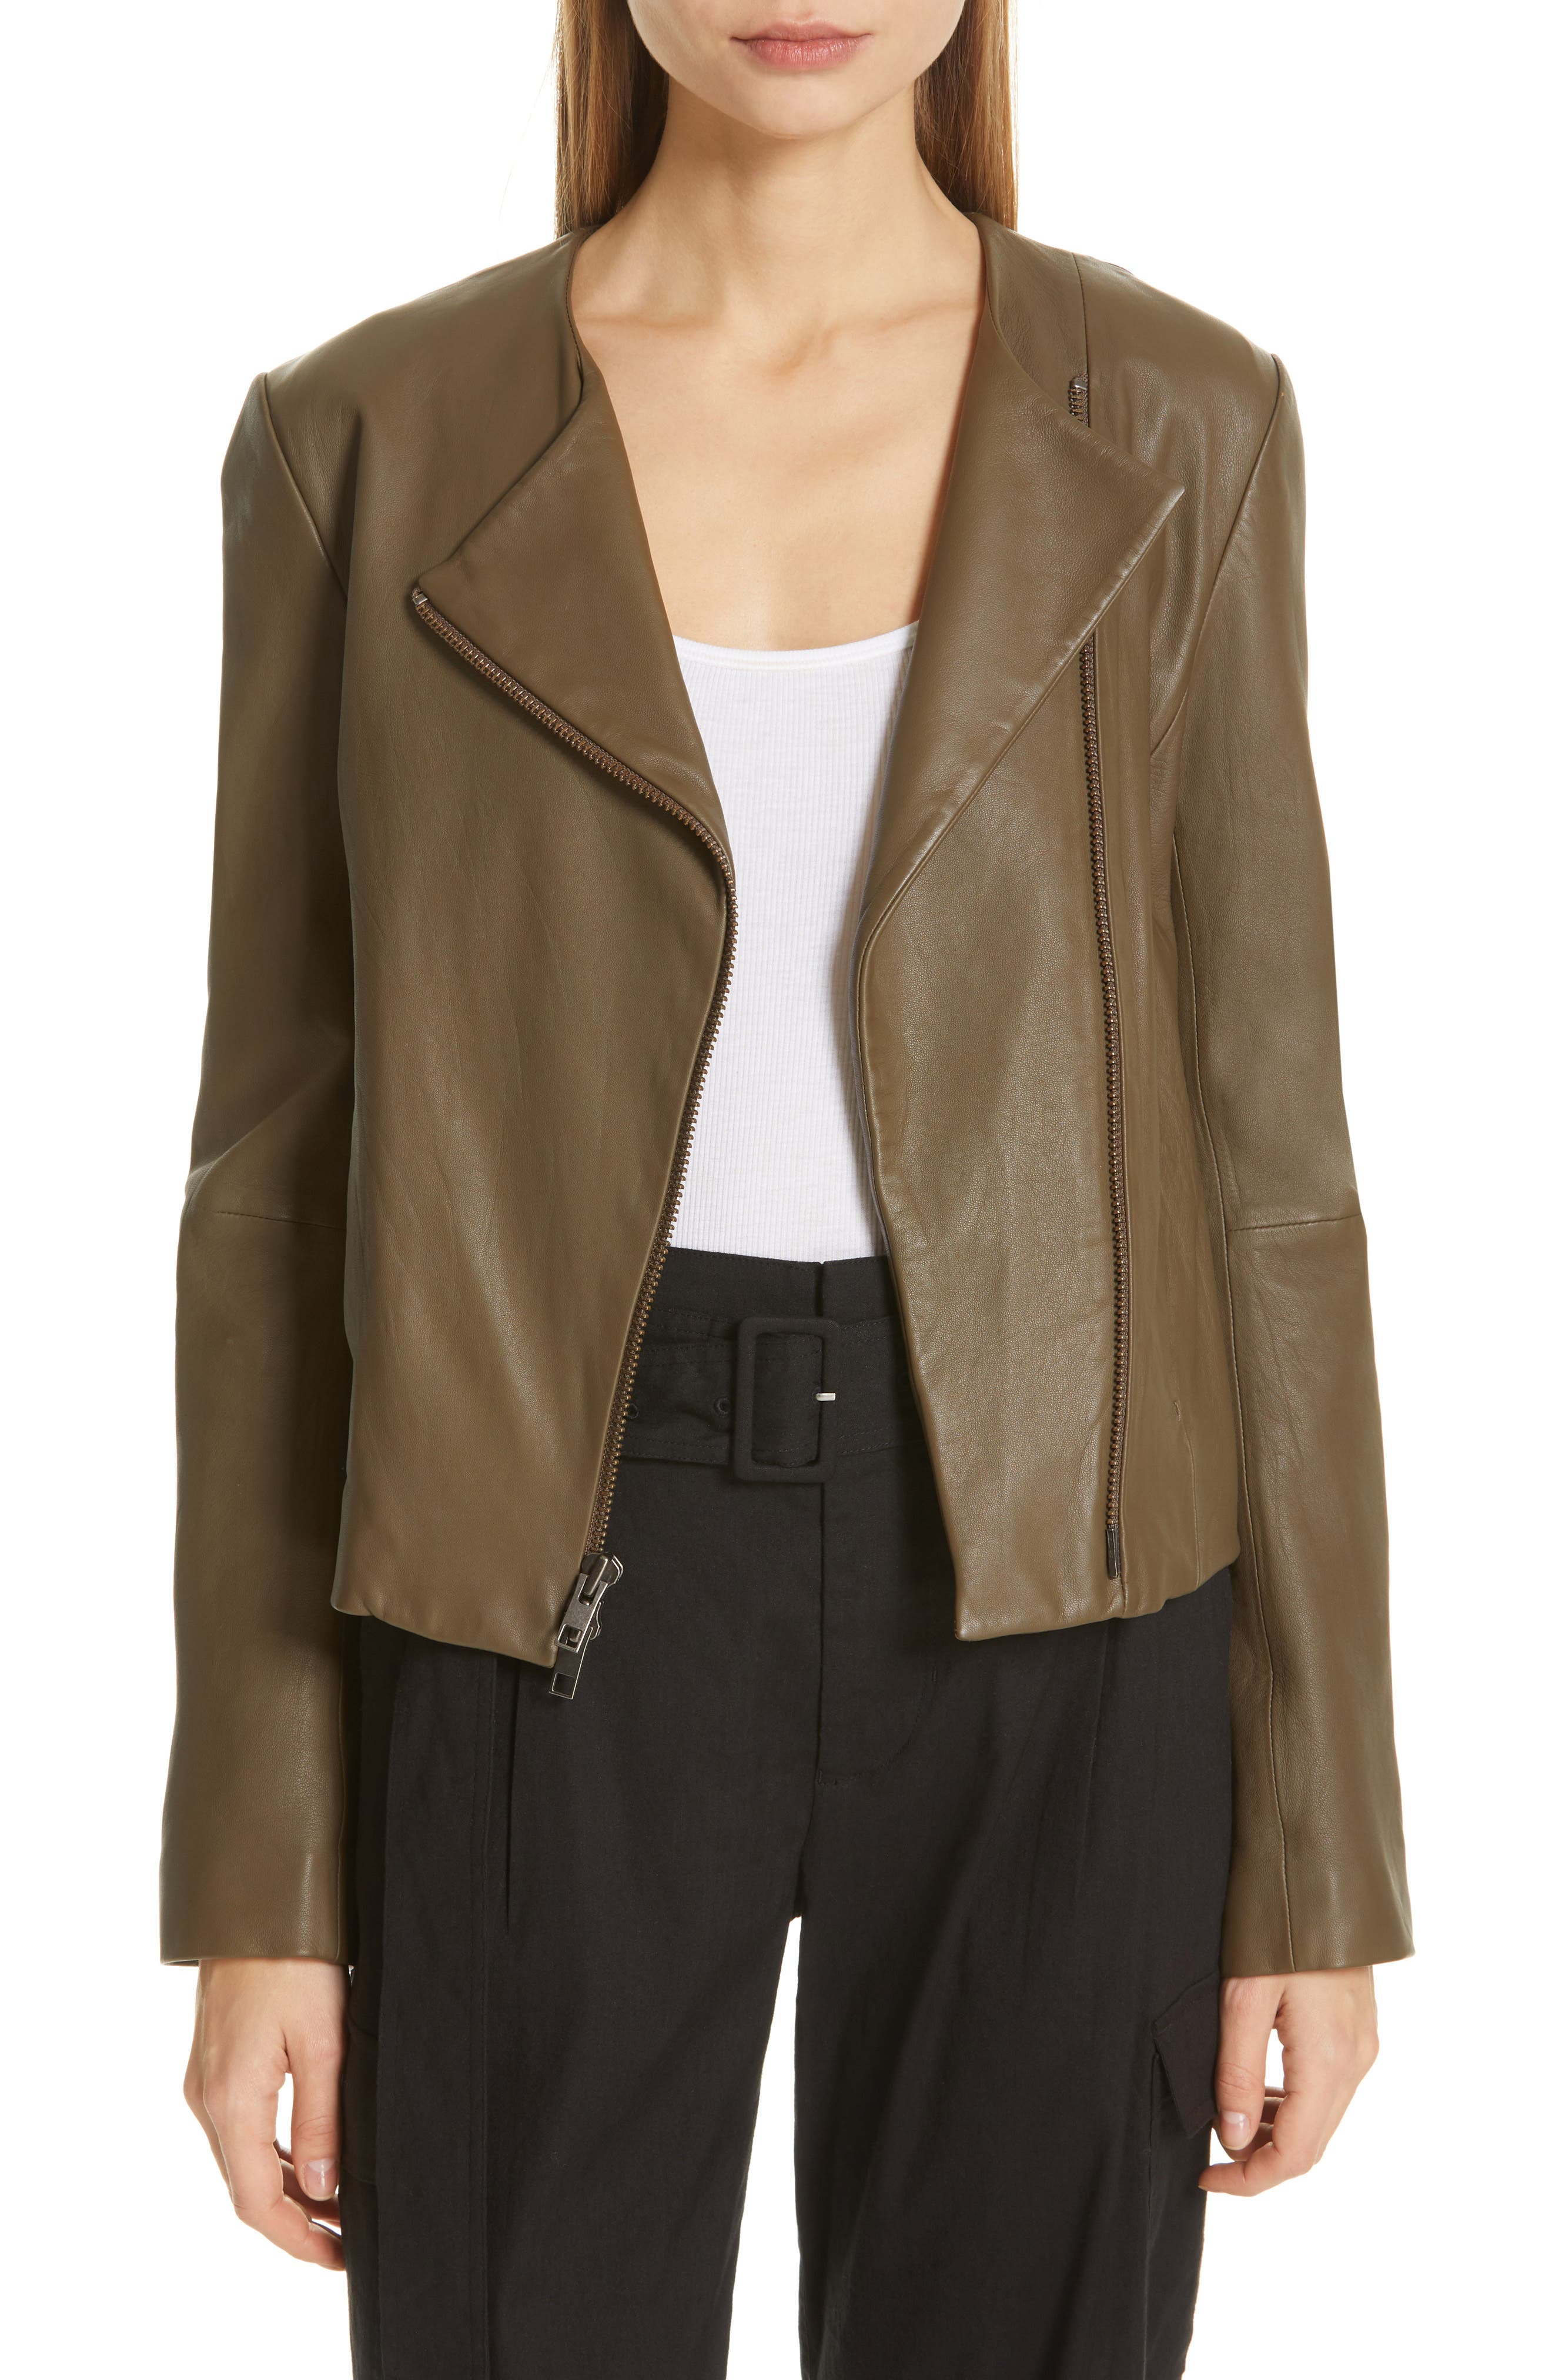 VINCE, Cross Front Leather Jacket, Main thumbnail 1, color, OLIVE WOOD